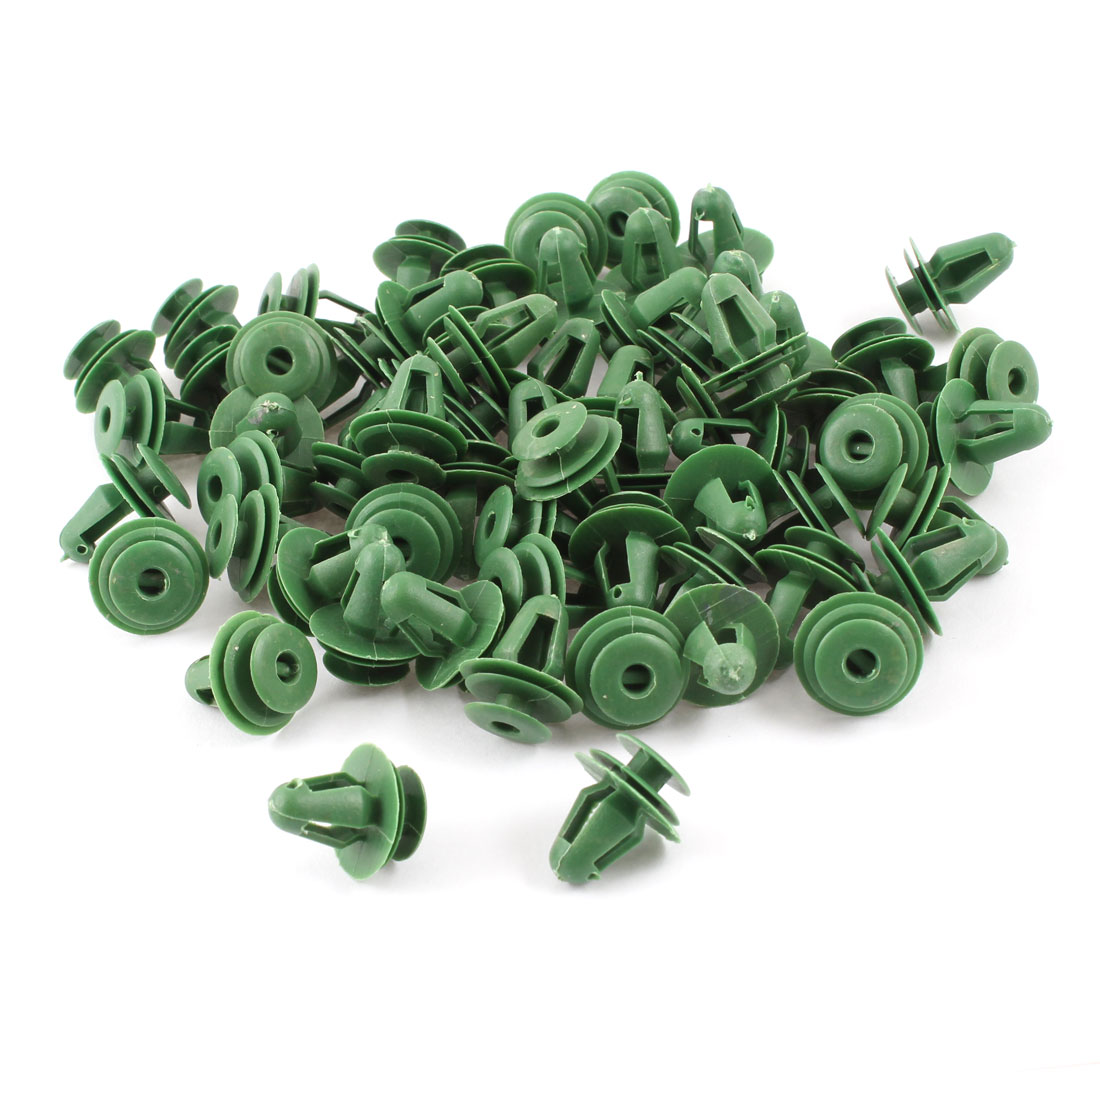 Unique Bargains Auto Car Fender Plastic Rivets Fasteners 18mm x 14mm x 10mm Green 100 Pcs